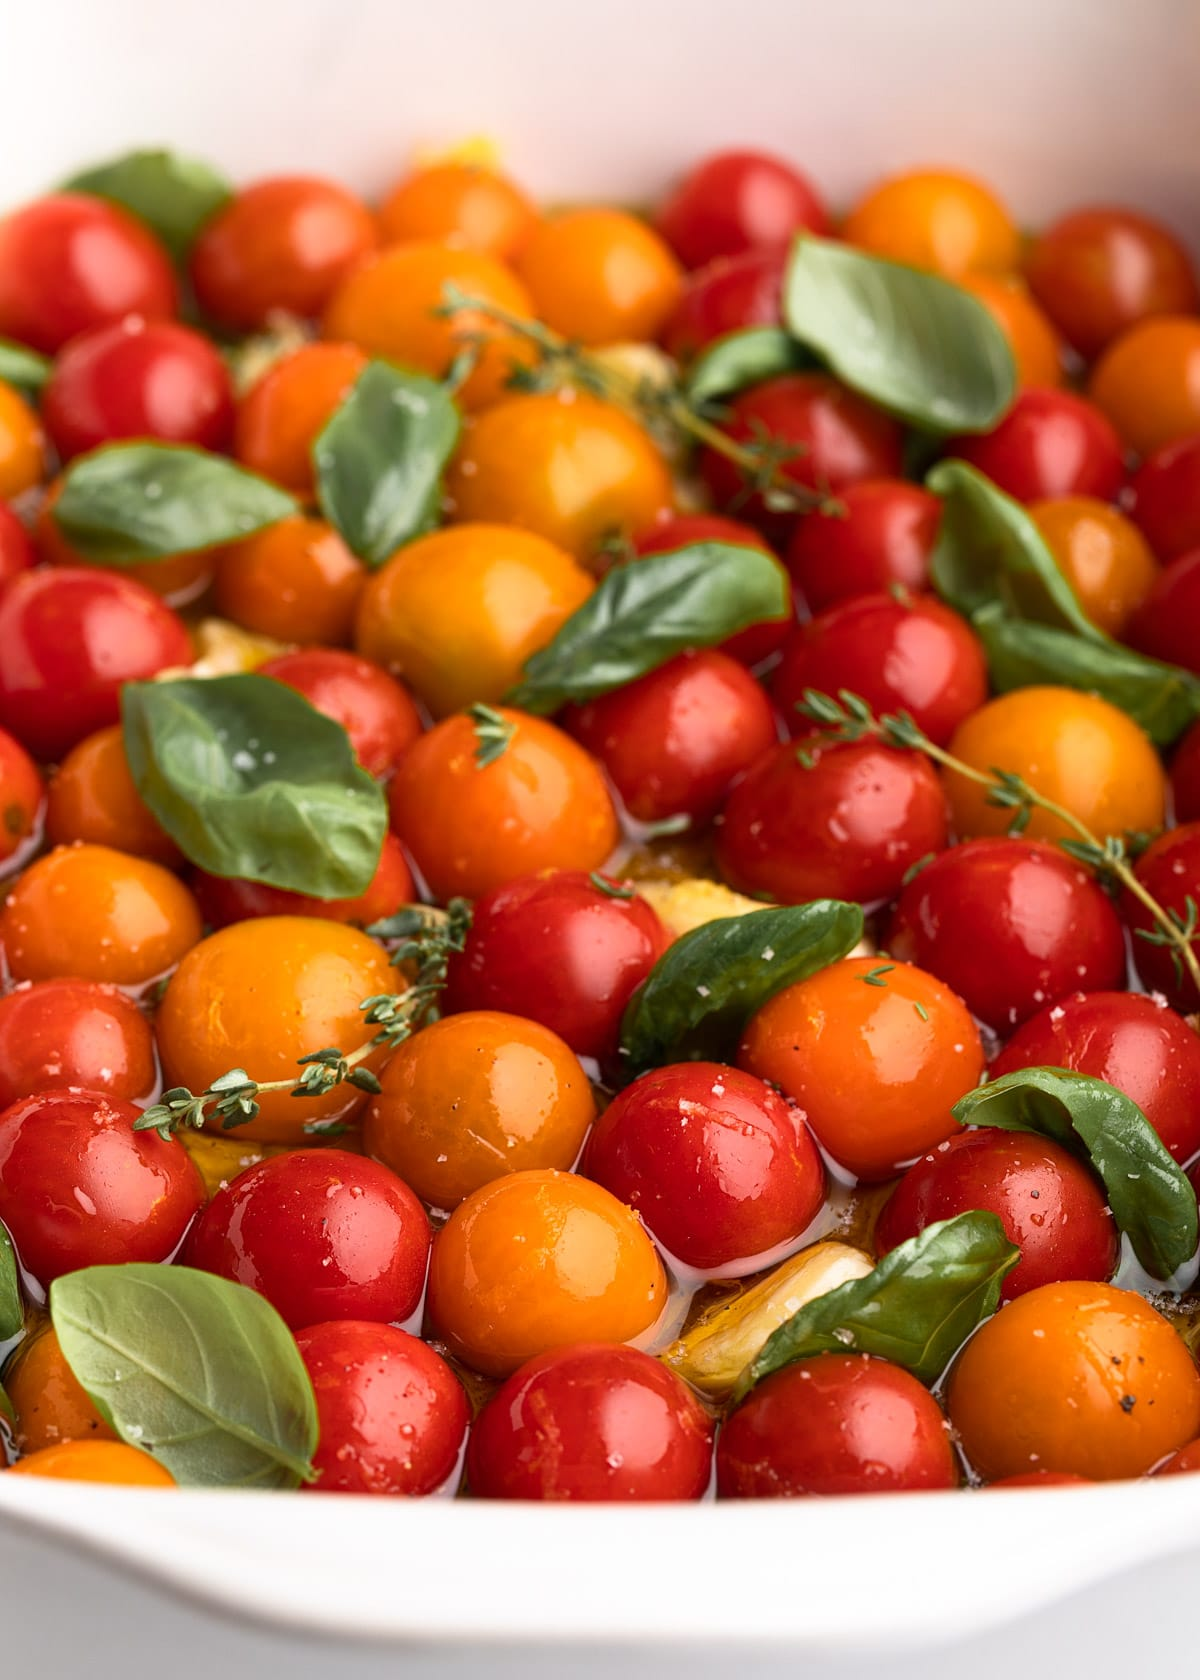 cherry tomatoes in a white ceramic baking dish with olive oil, garlic, and fresh herbs